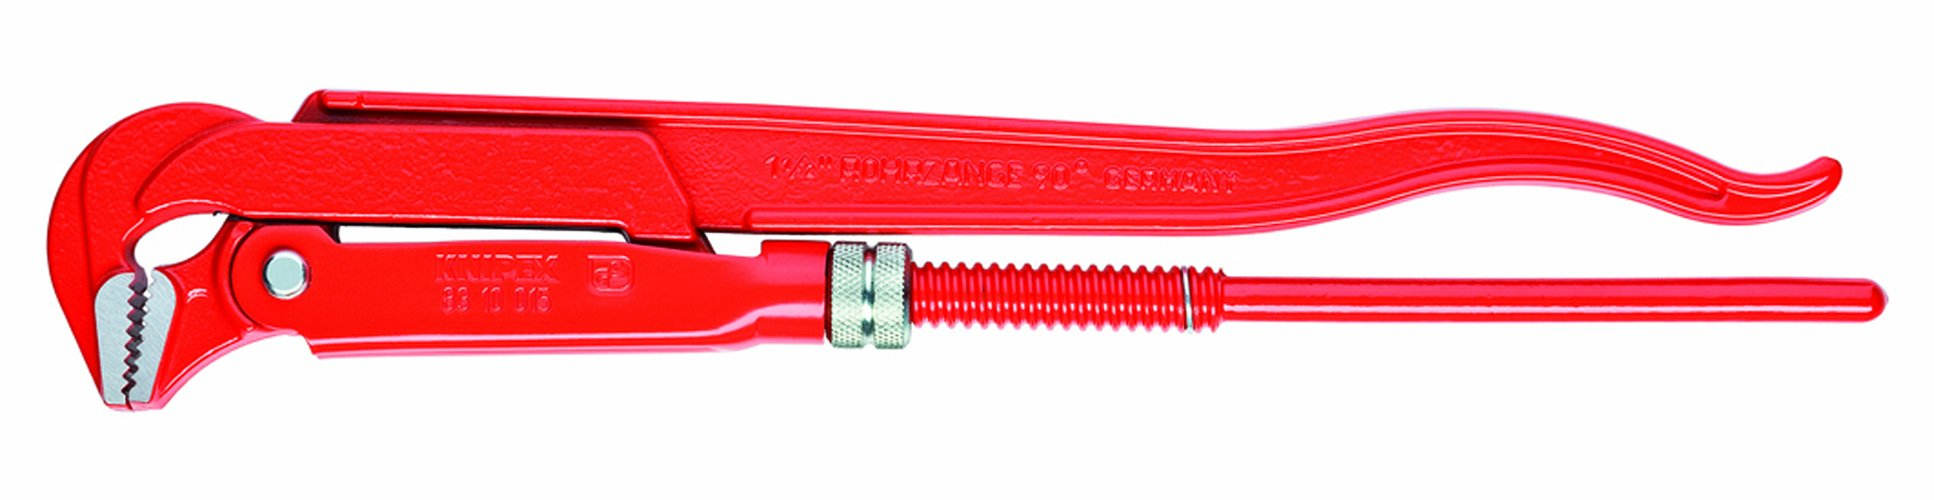 KNIPEX 83 10 015 90-Degree Swedish Pattern Pipe Wrench by KNIPEX Tools